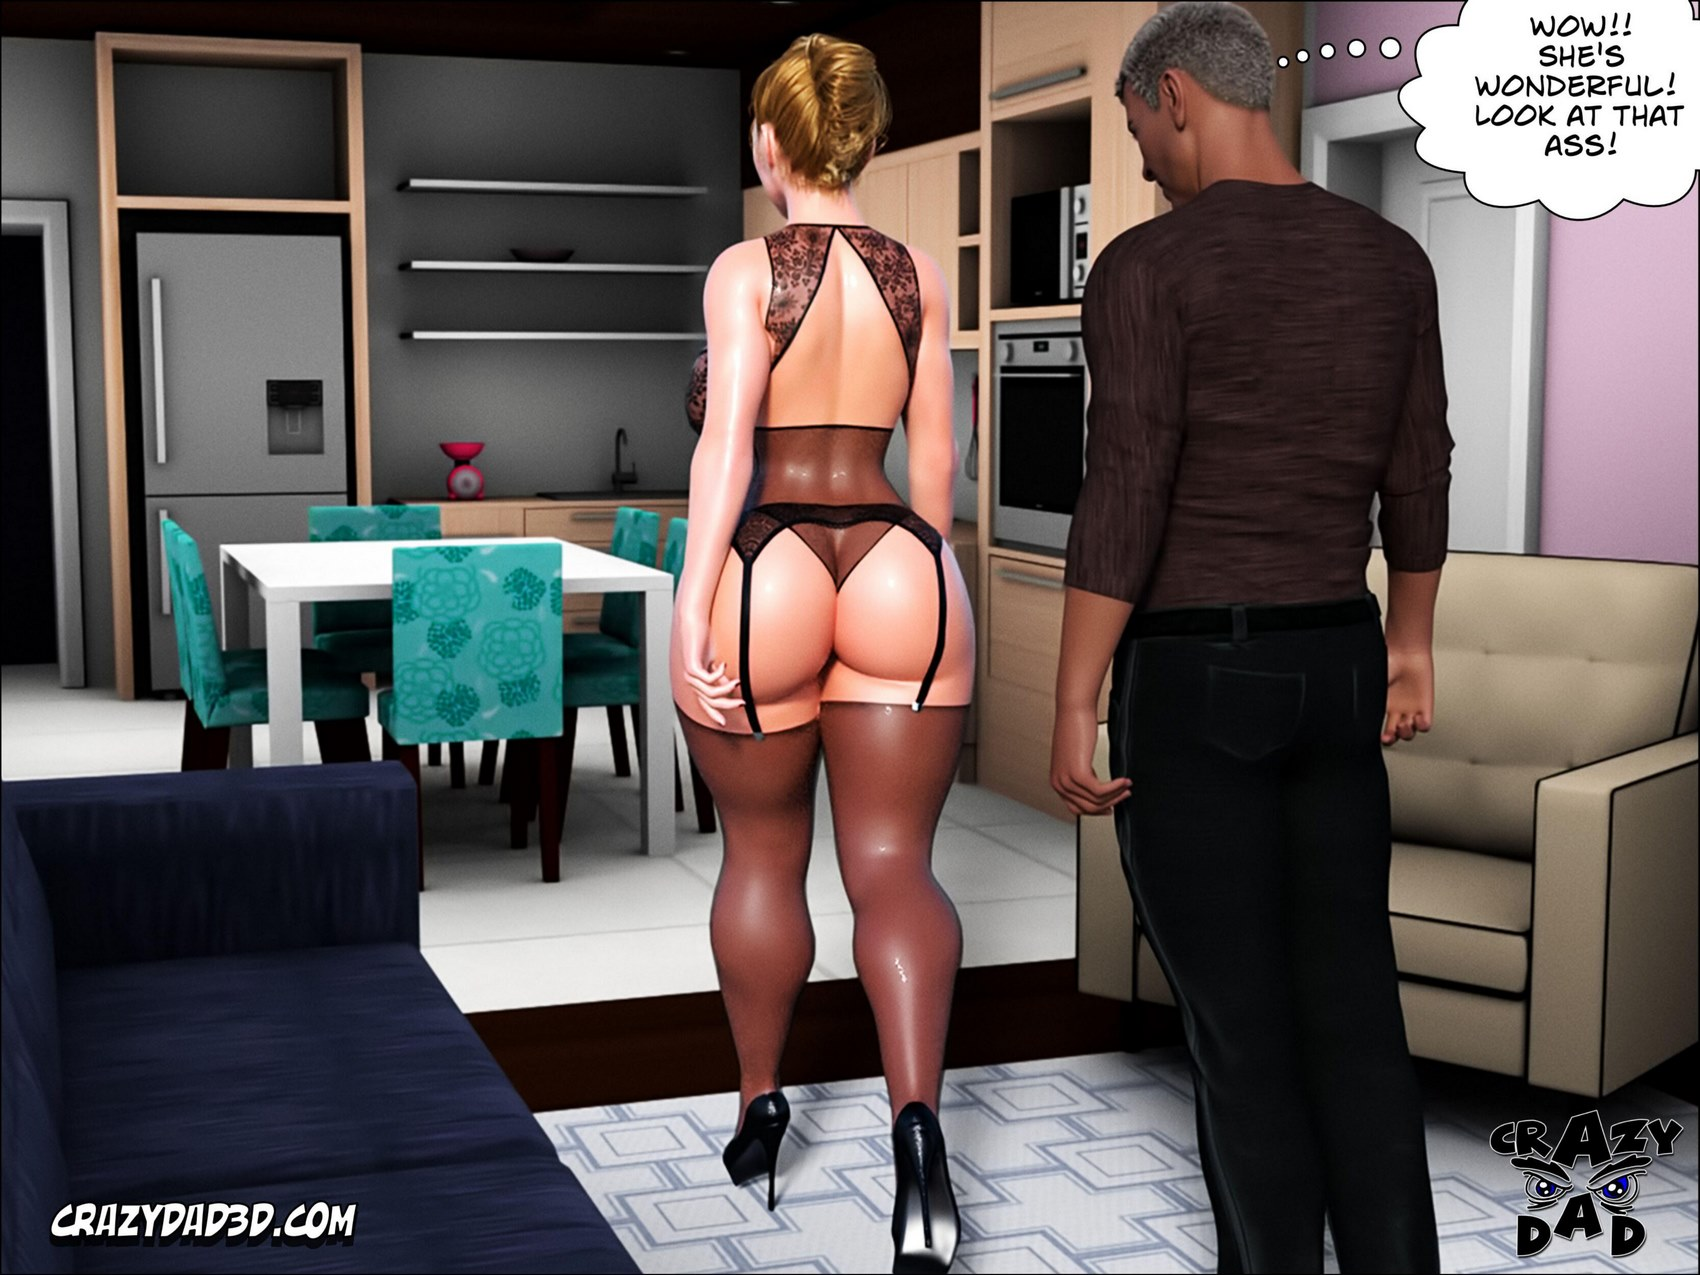 Father In Law At Home- CrazyDad3D